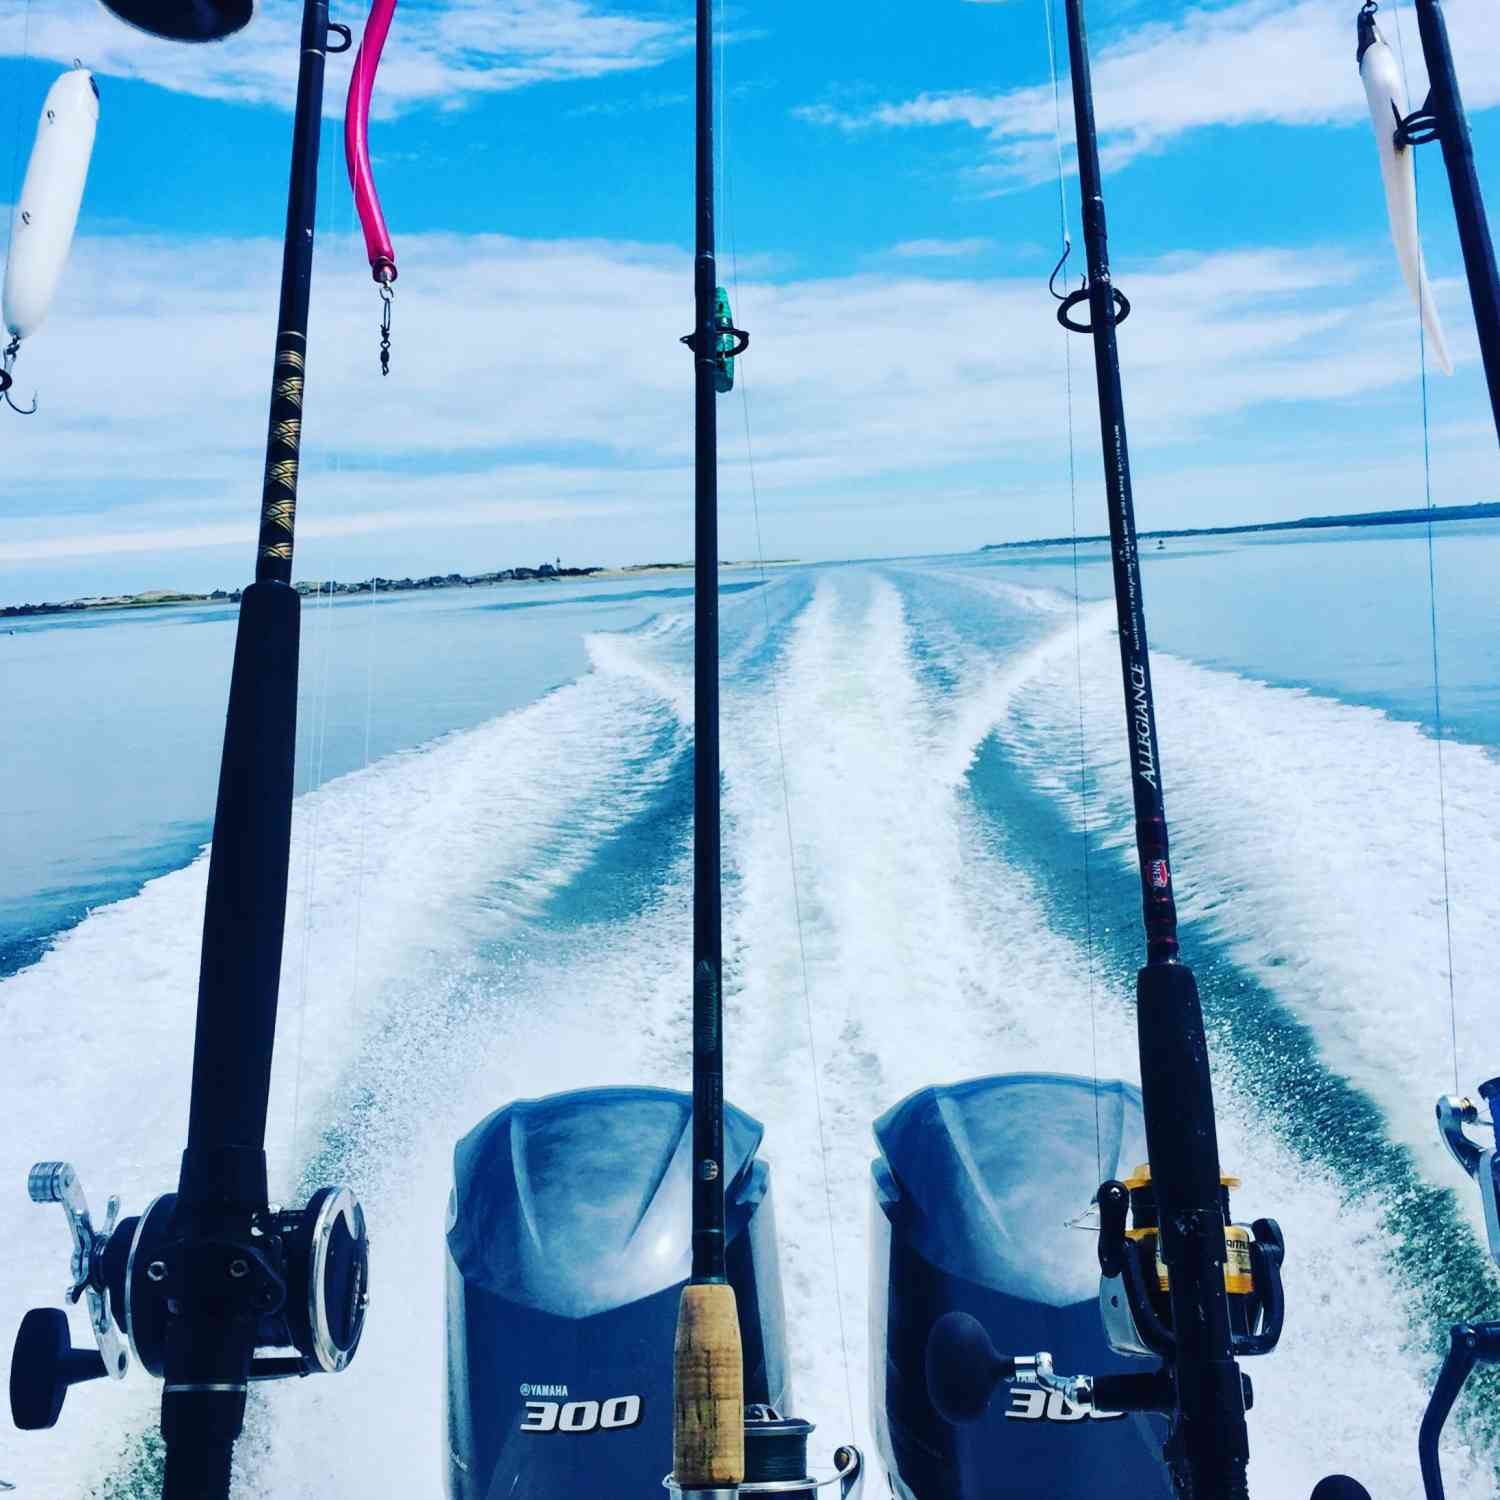 Title: Heading Home - On board their Sportsman Open 282 Center Console - Location: Barnstable, MA. Participating in the Photo Contest #SportsmanJuly2020